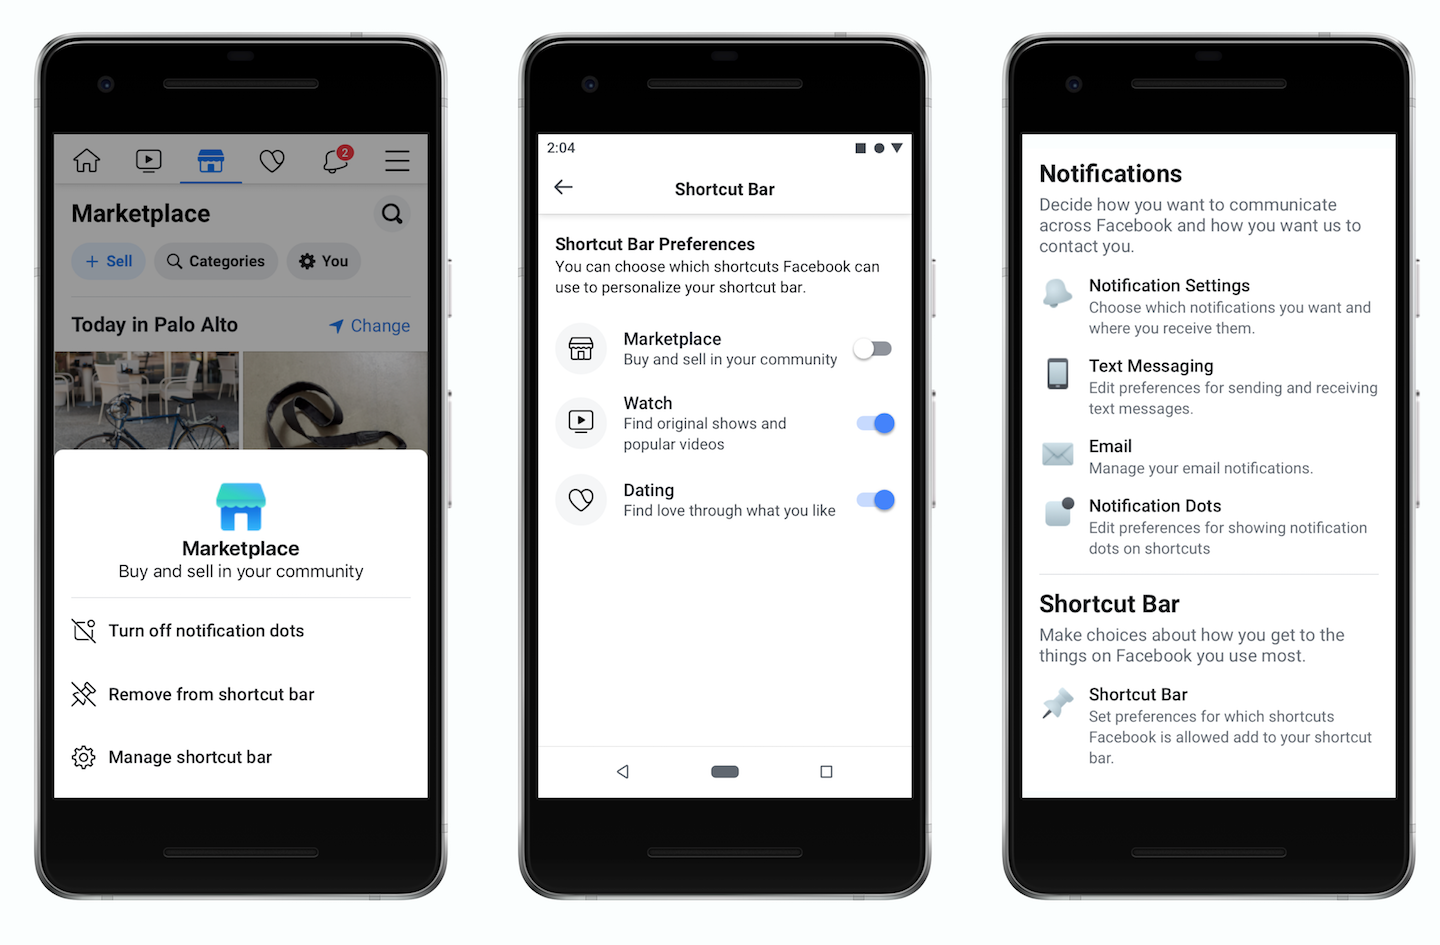 Facebook app to offer more customization in new version